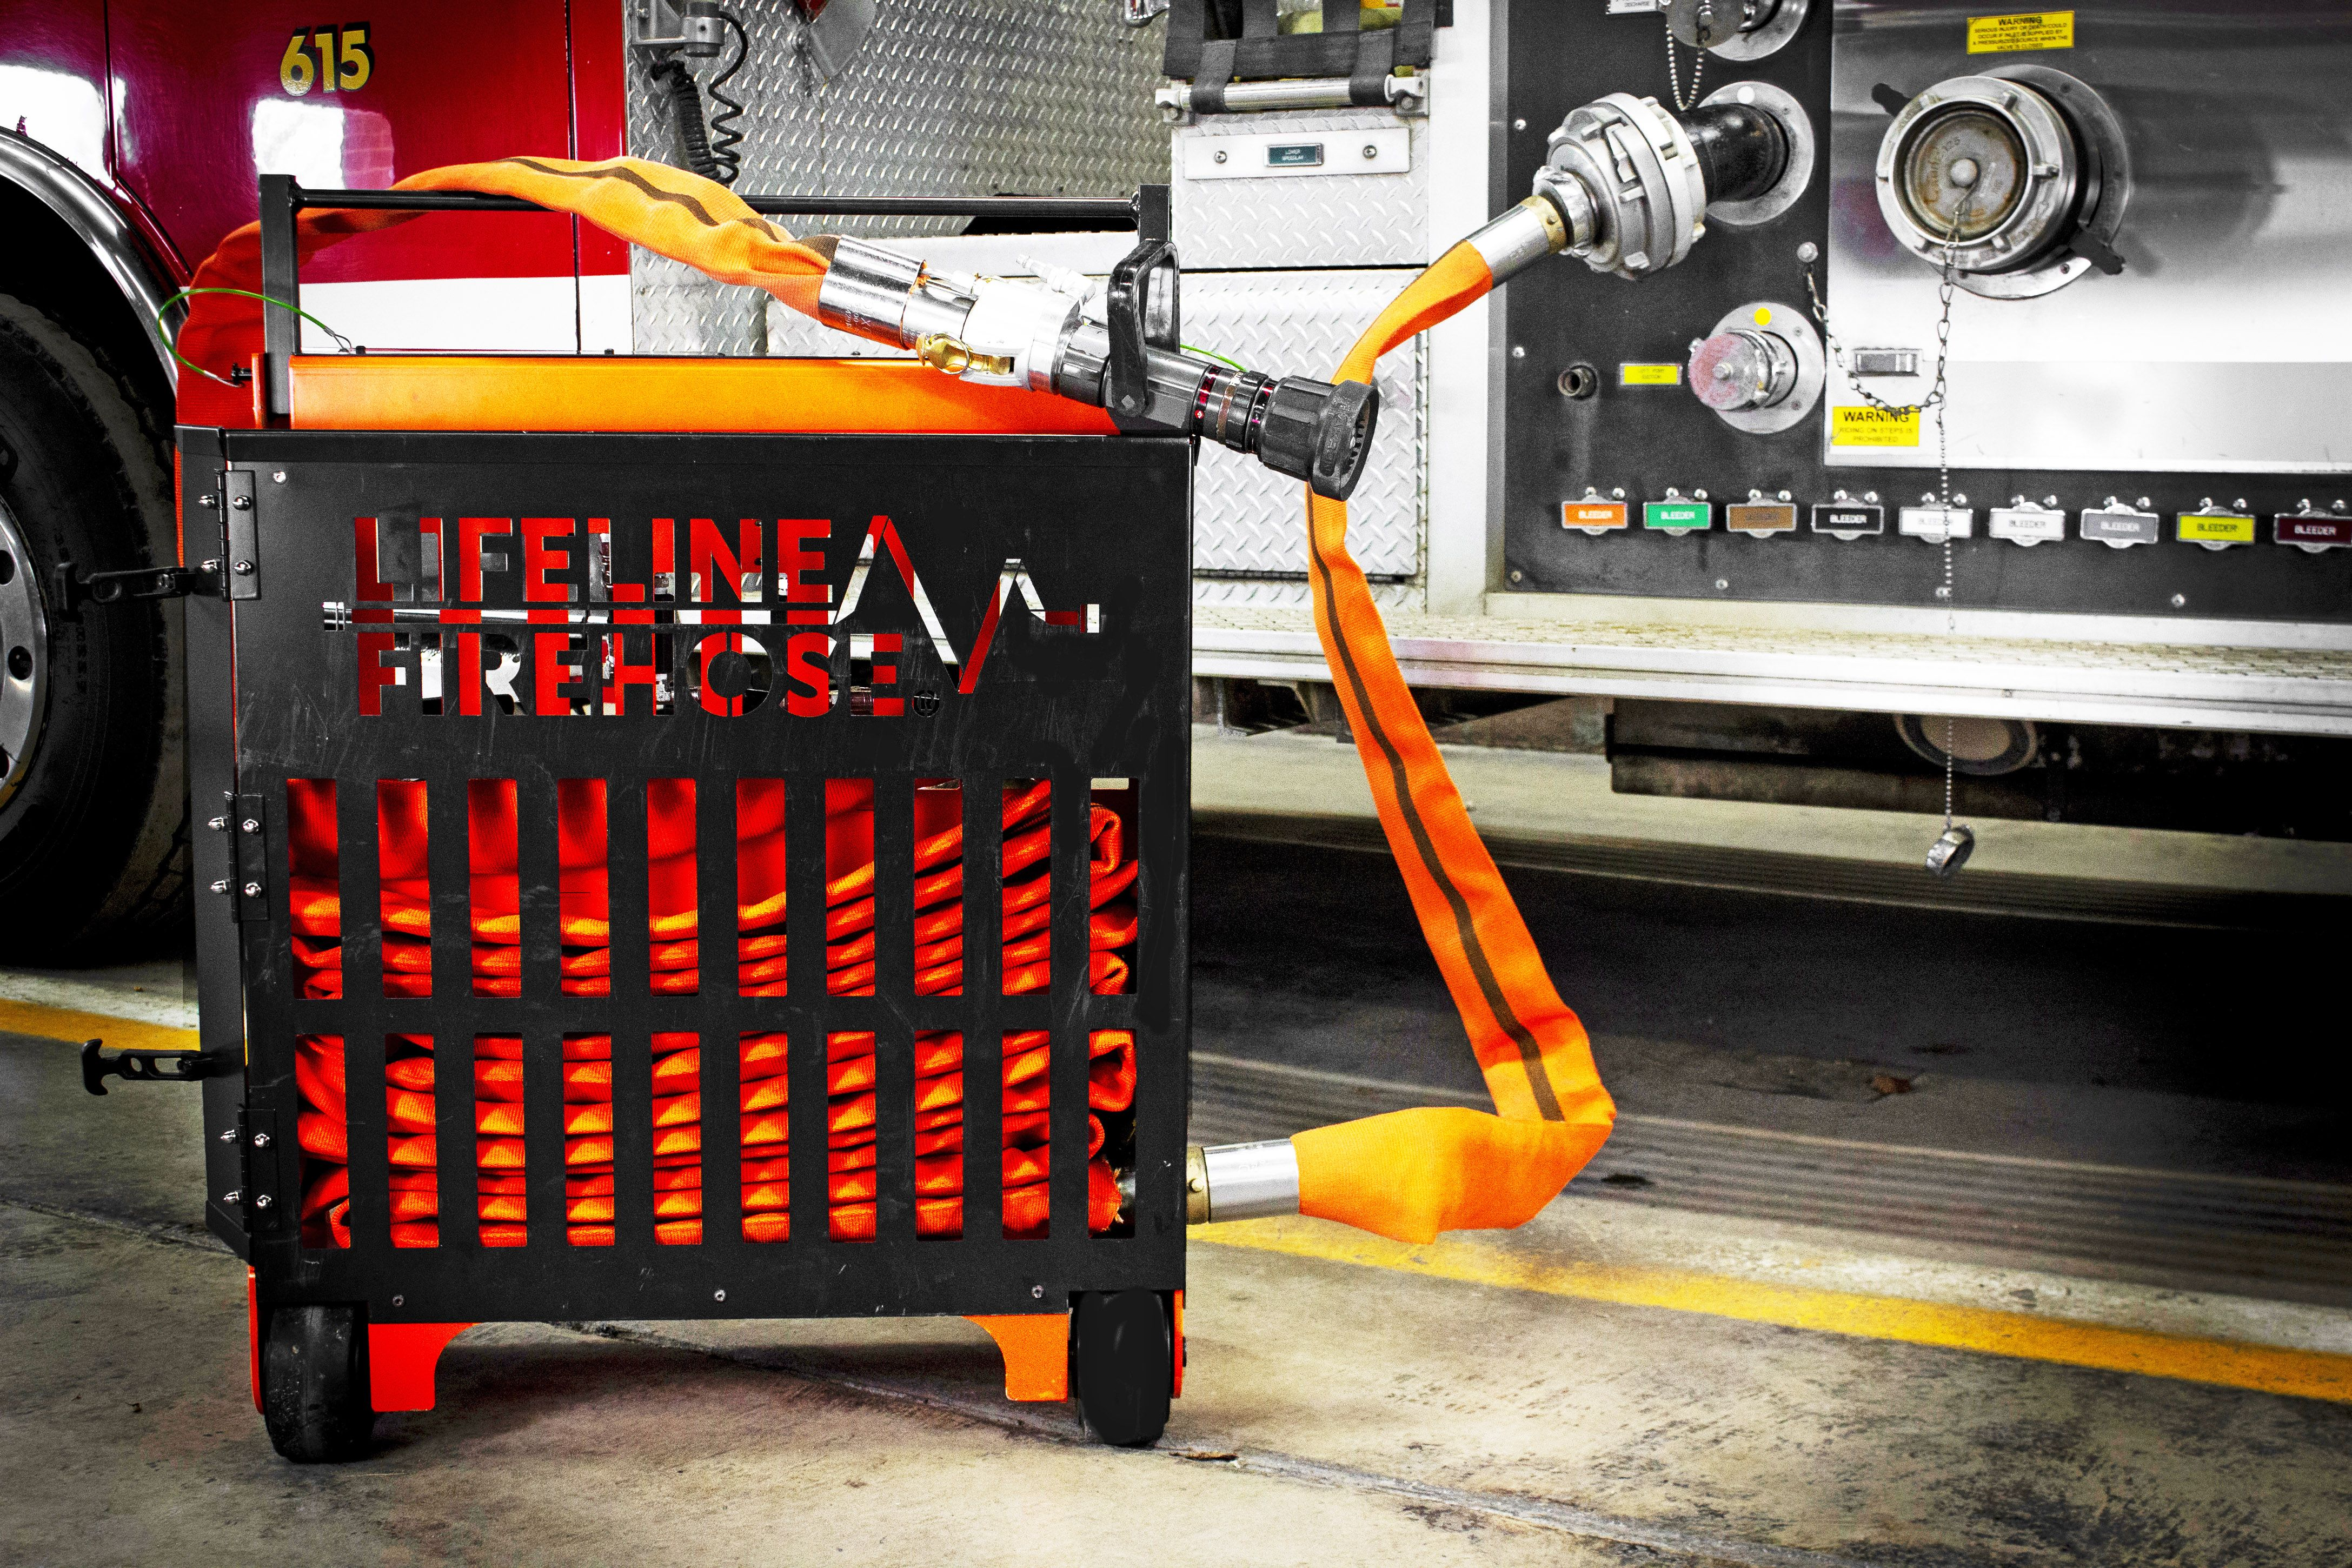 The Lifeline Firehose Could Revolutionize Firefighting